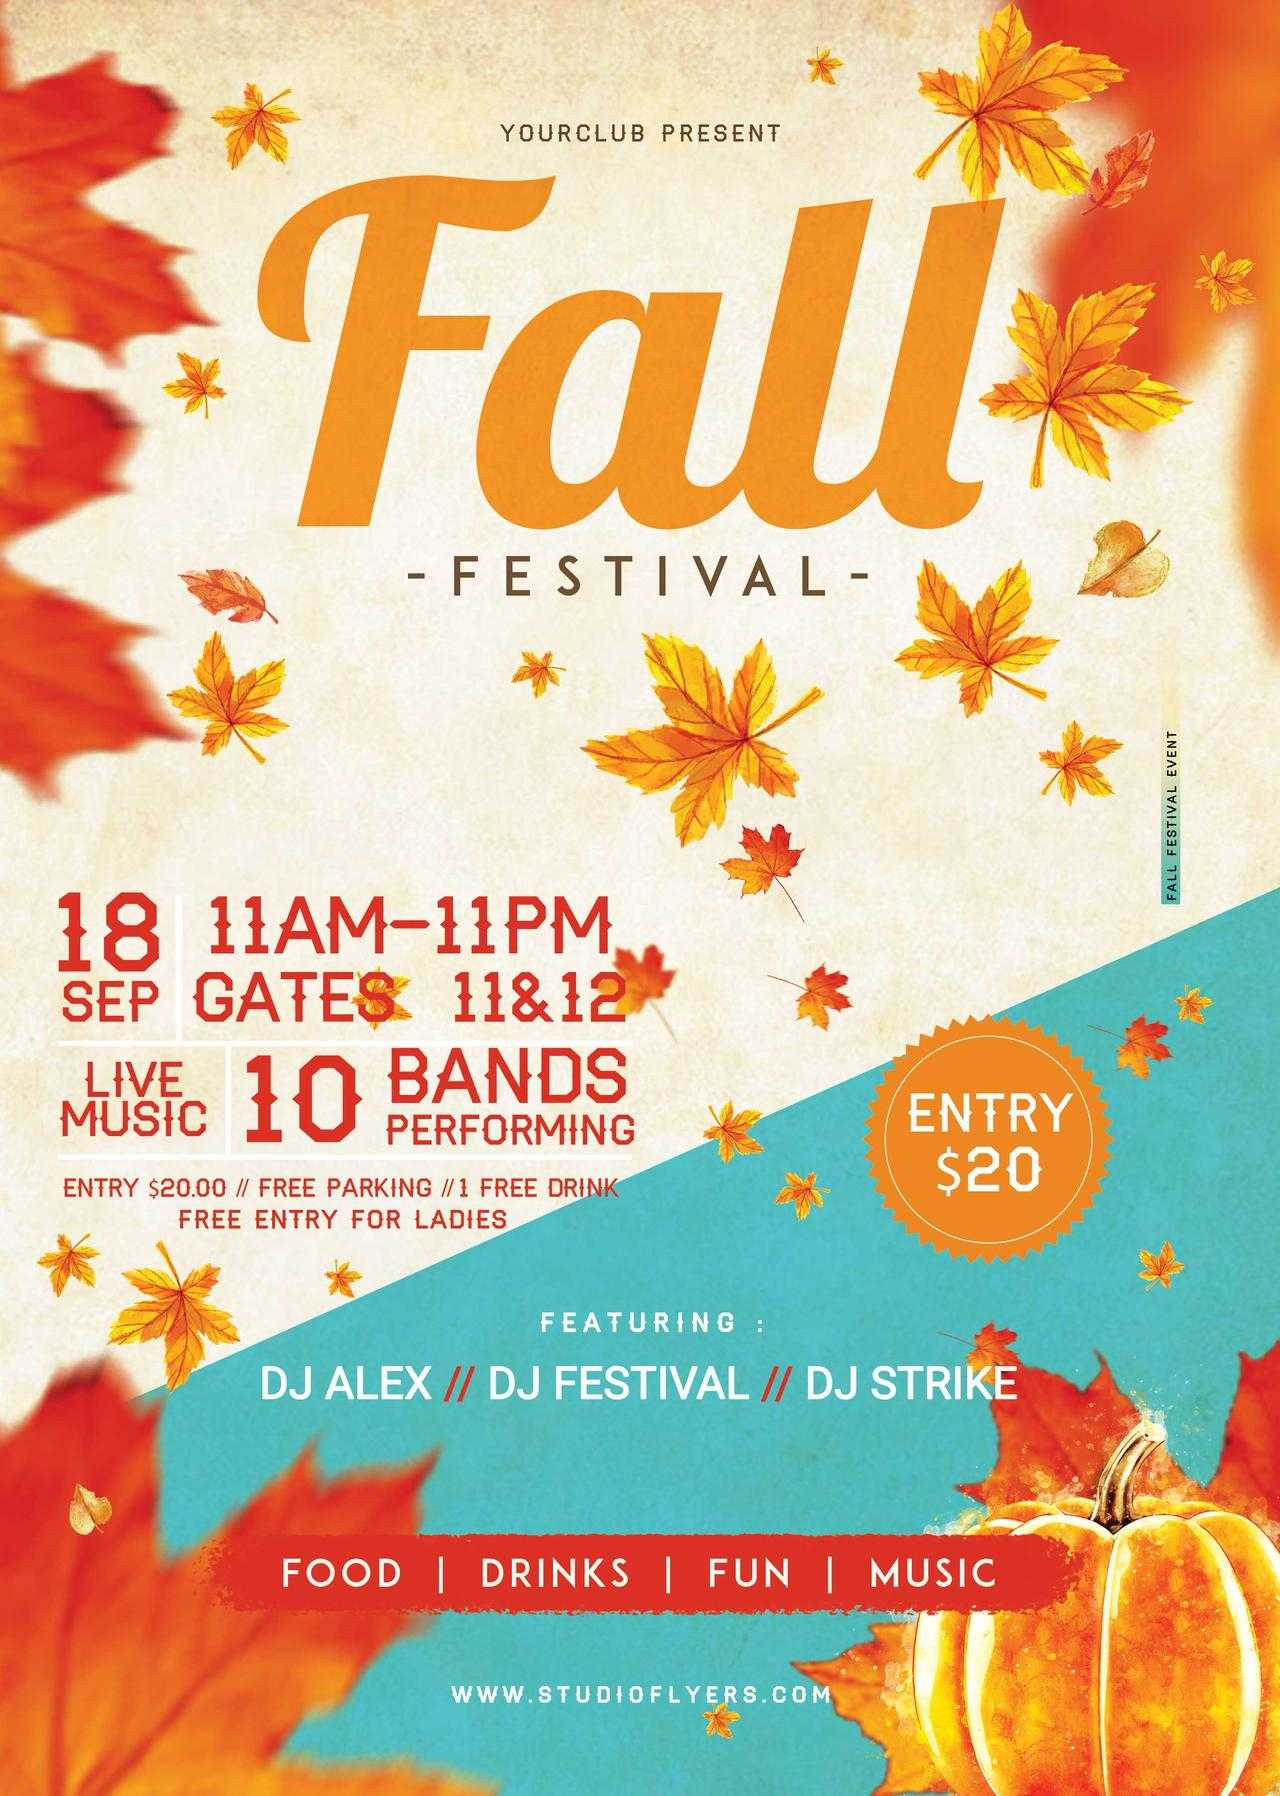 Fall Festival #3 Free Psd Flyer Template - Free Psd Flyer Inside Fall Festival Flyer Templates Free